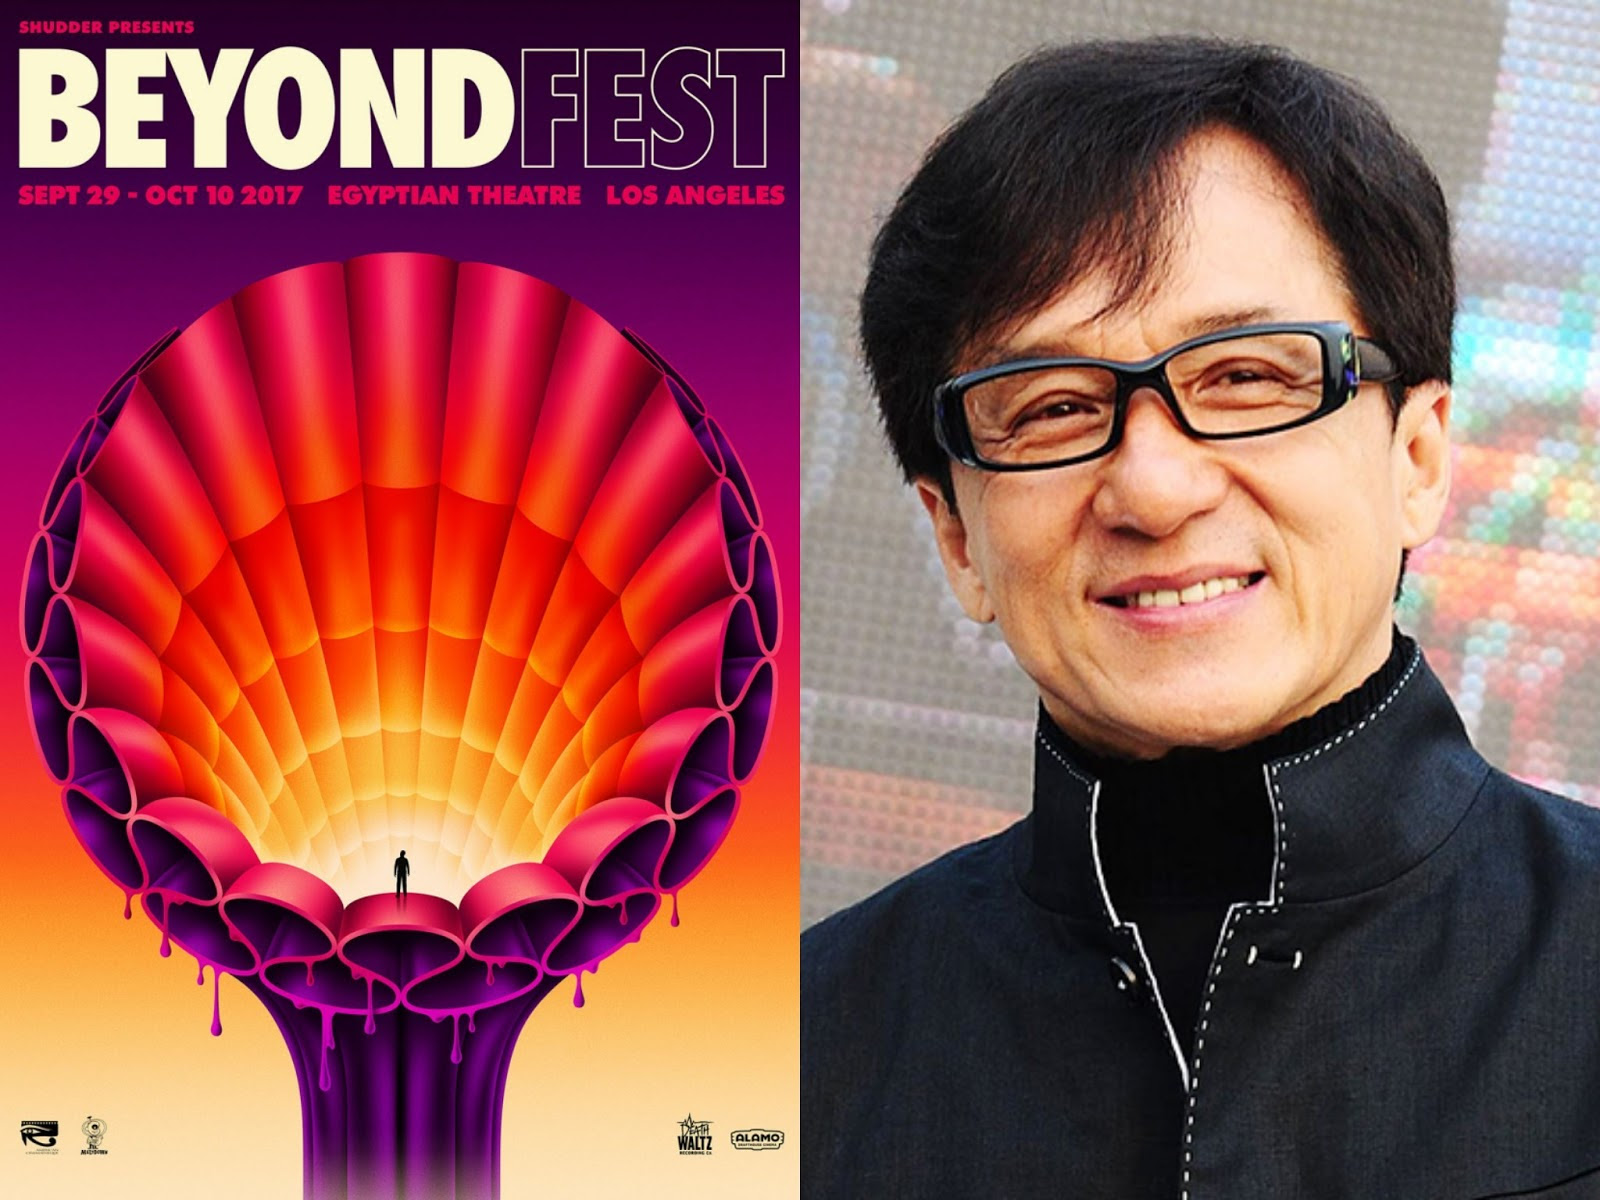 BEYOND FEST 2017 Adds TRIPLE THREAT: A NIGHT WITH JACKIE CHAN For October 6!